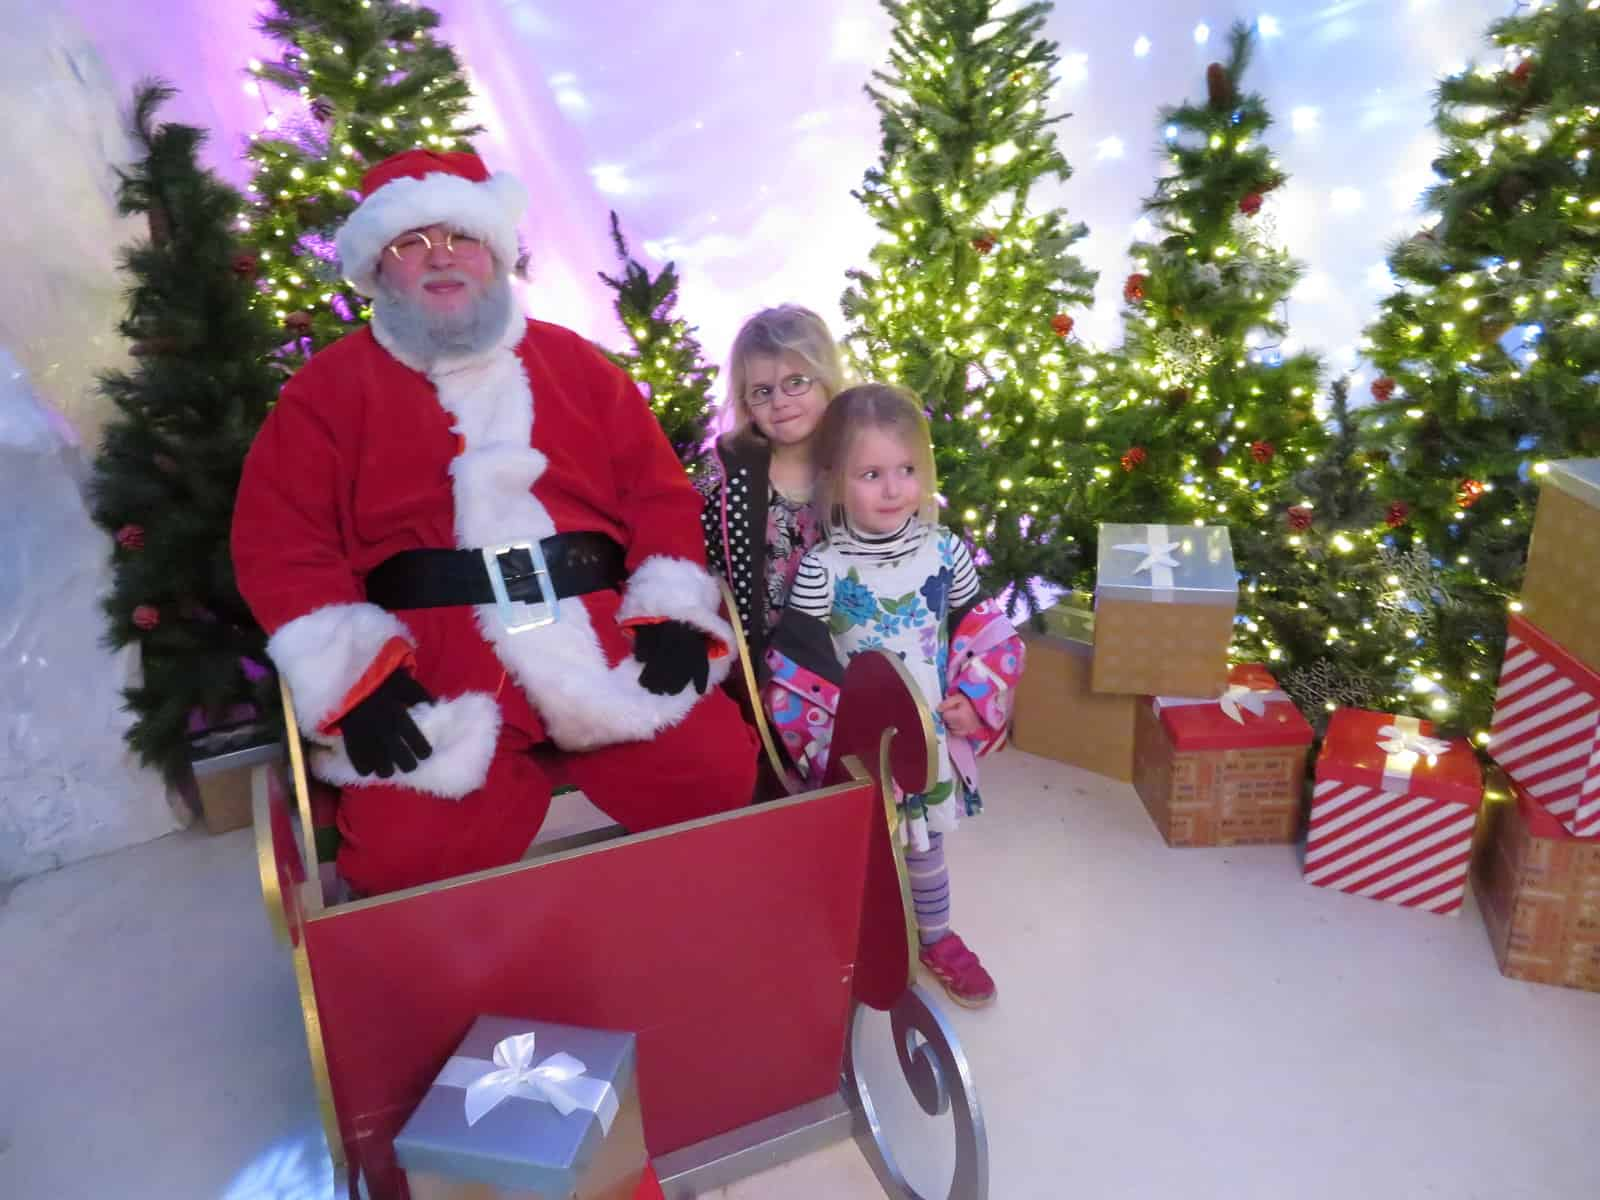 Santa in sleigh with two little girls, Christmas trees in the background